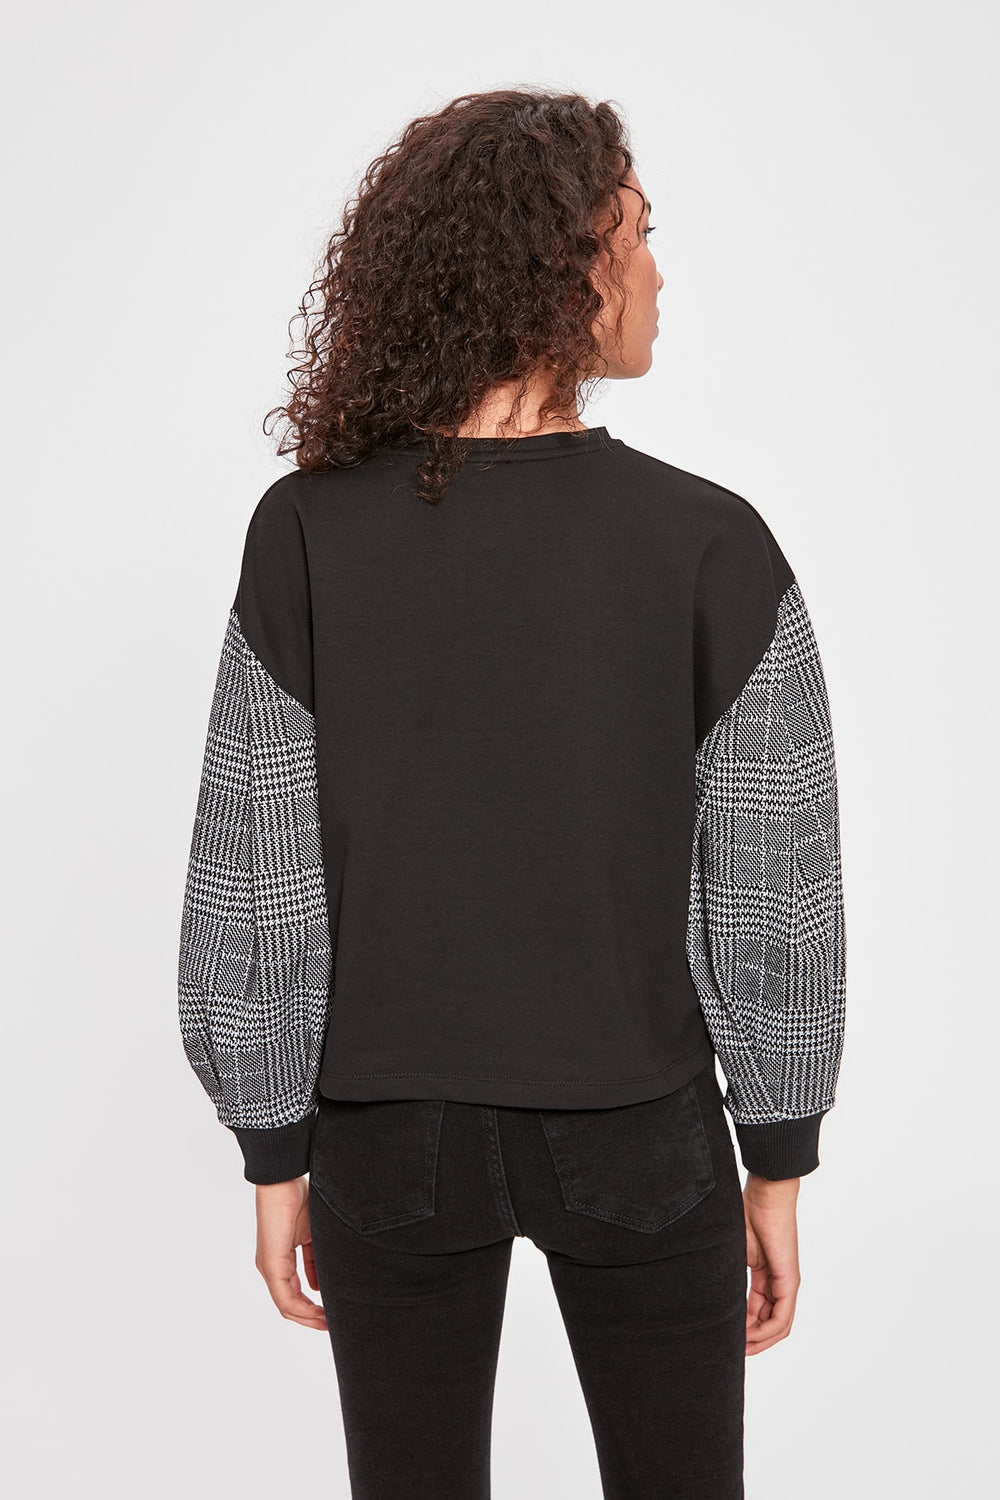 Miss Zut Miss Zut Black Plaid Detailed Basic Knitted Sweatshirt Miss Zut &CO